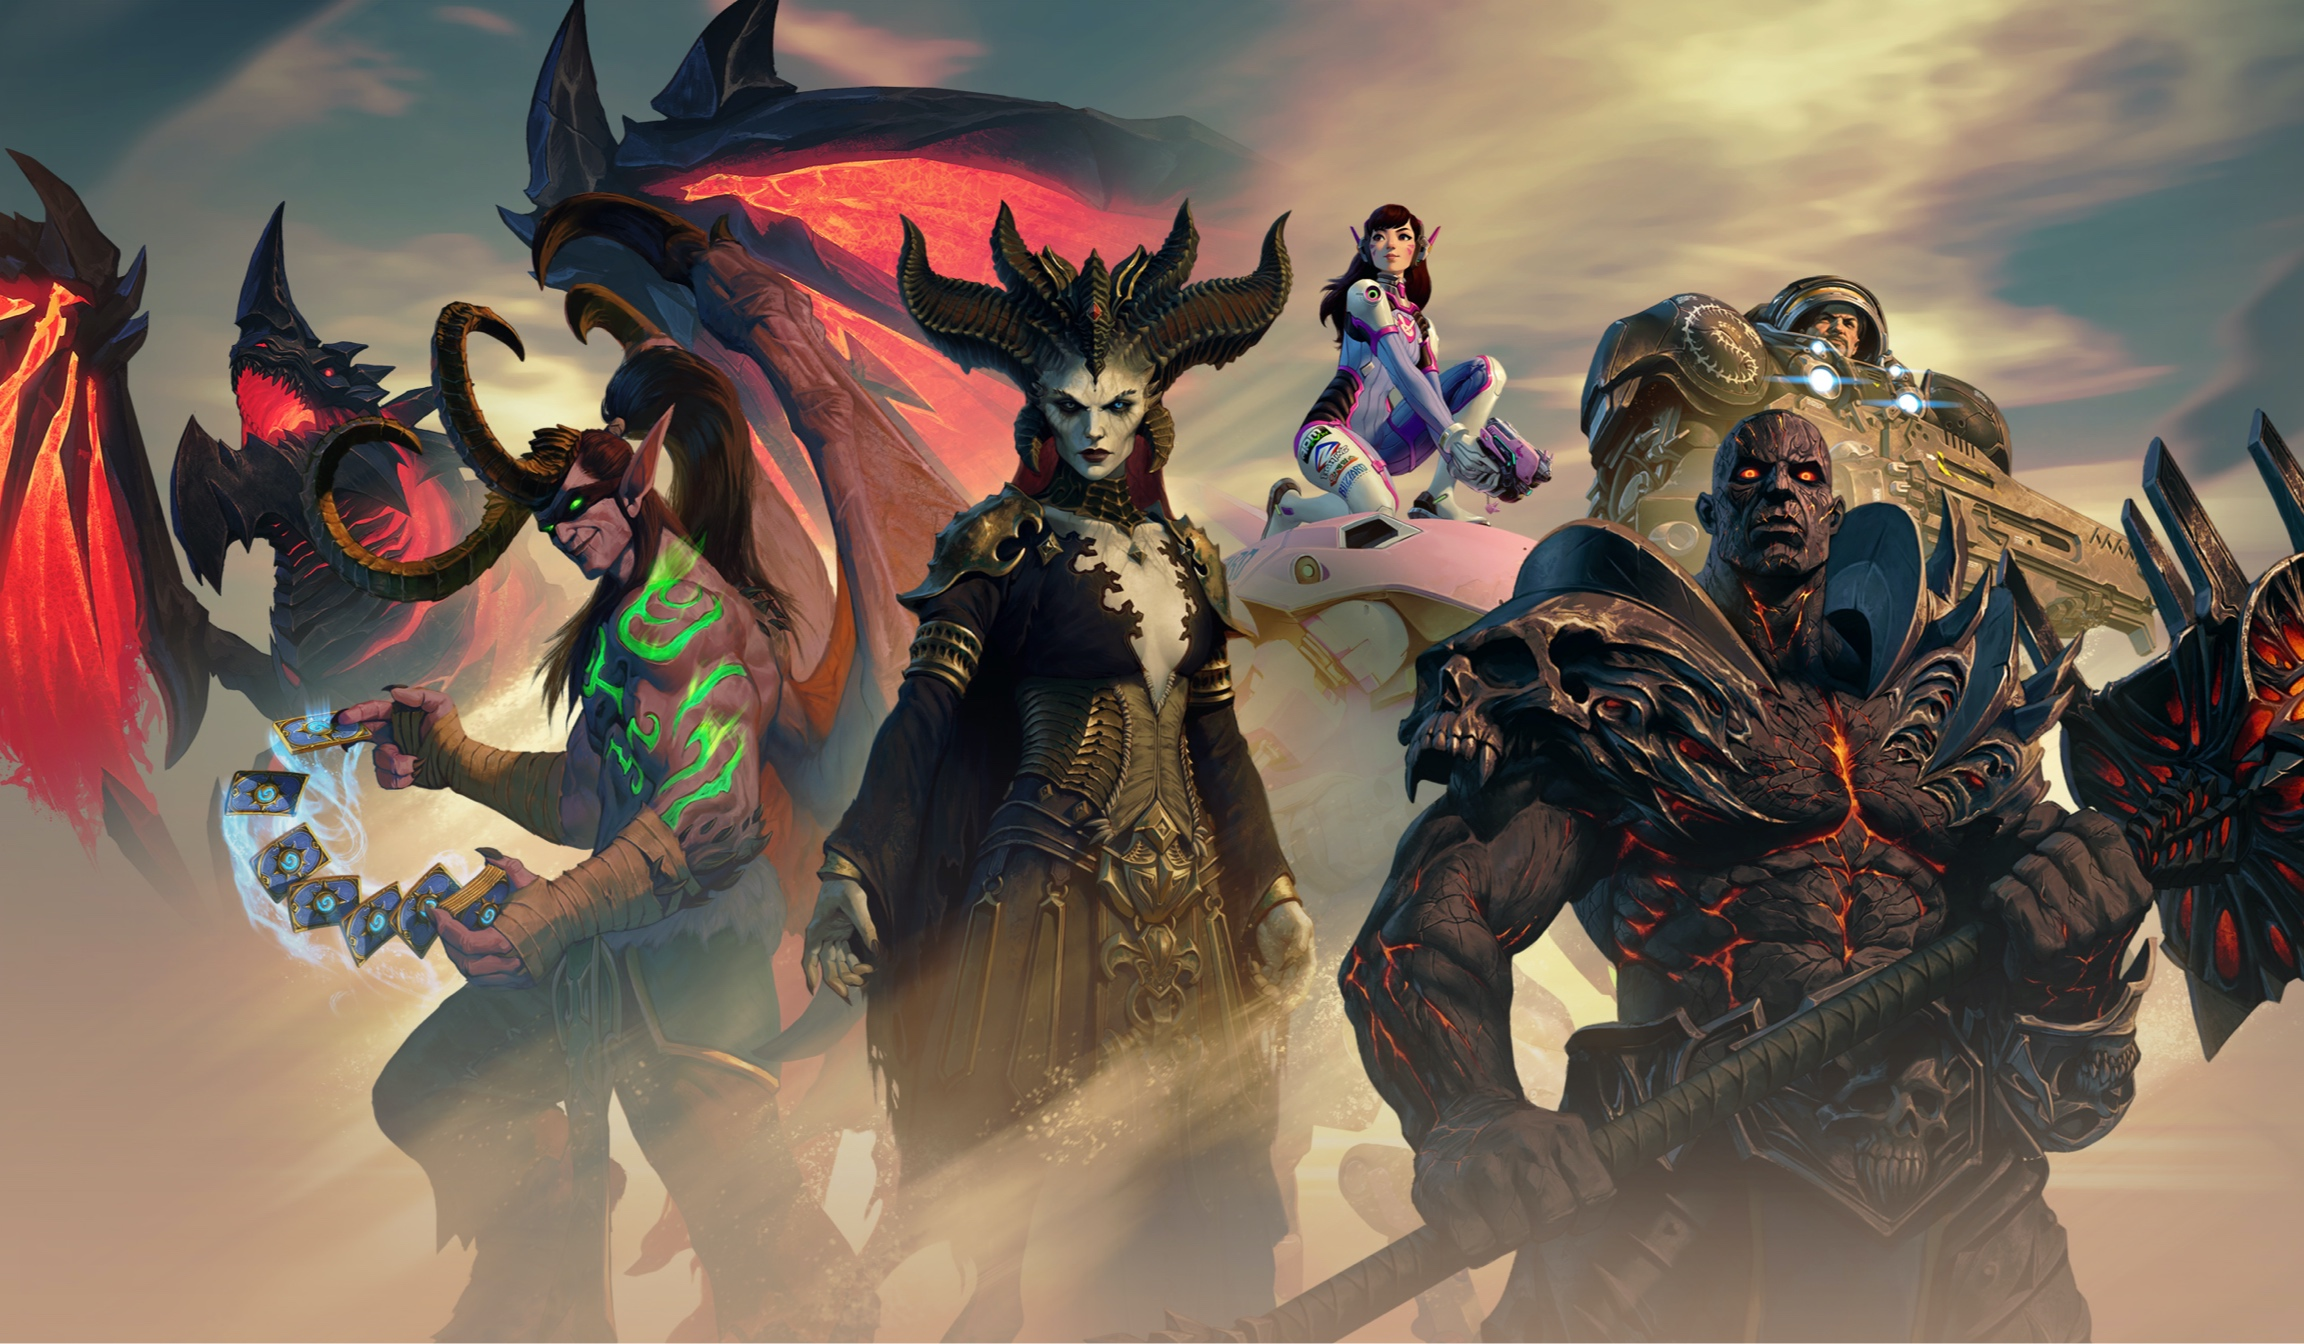 Artwork from BlizzConline featuring characters from Diablo 4, Overwatch, World of Warcraft, and StarCraft.